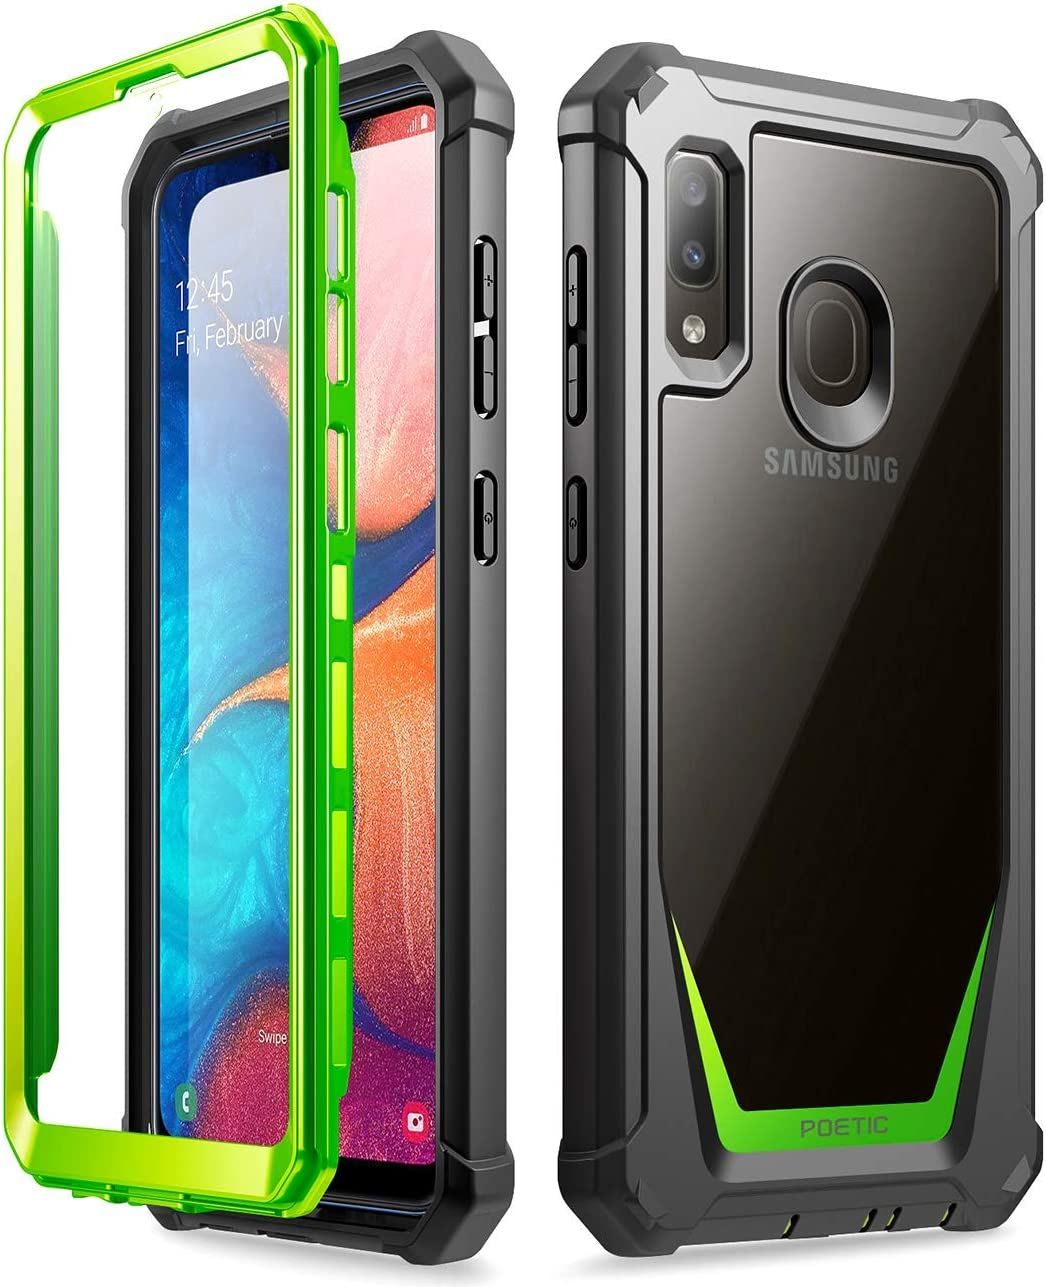 Galaxy A20 Rugged Clear Case, Galaxy A30 Case, Poetic Full-Body Hybrid Shockproof Bumper Cover, Built-in-Screen Protector, Guardian Series, Case for Samsung Galaxy A20 / Galaxy A30, Green/Clear